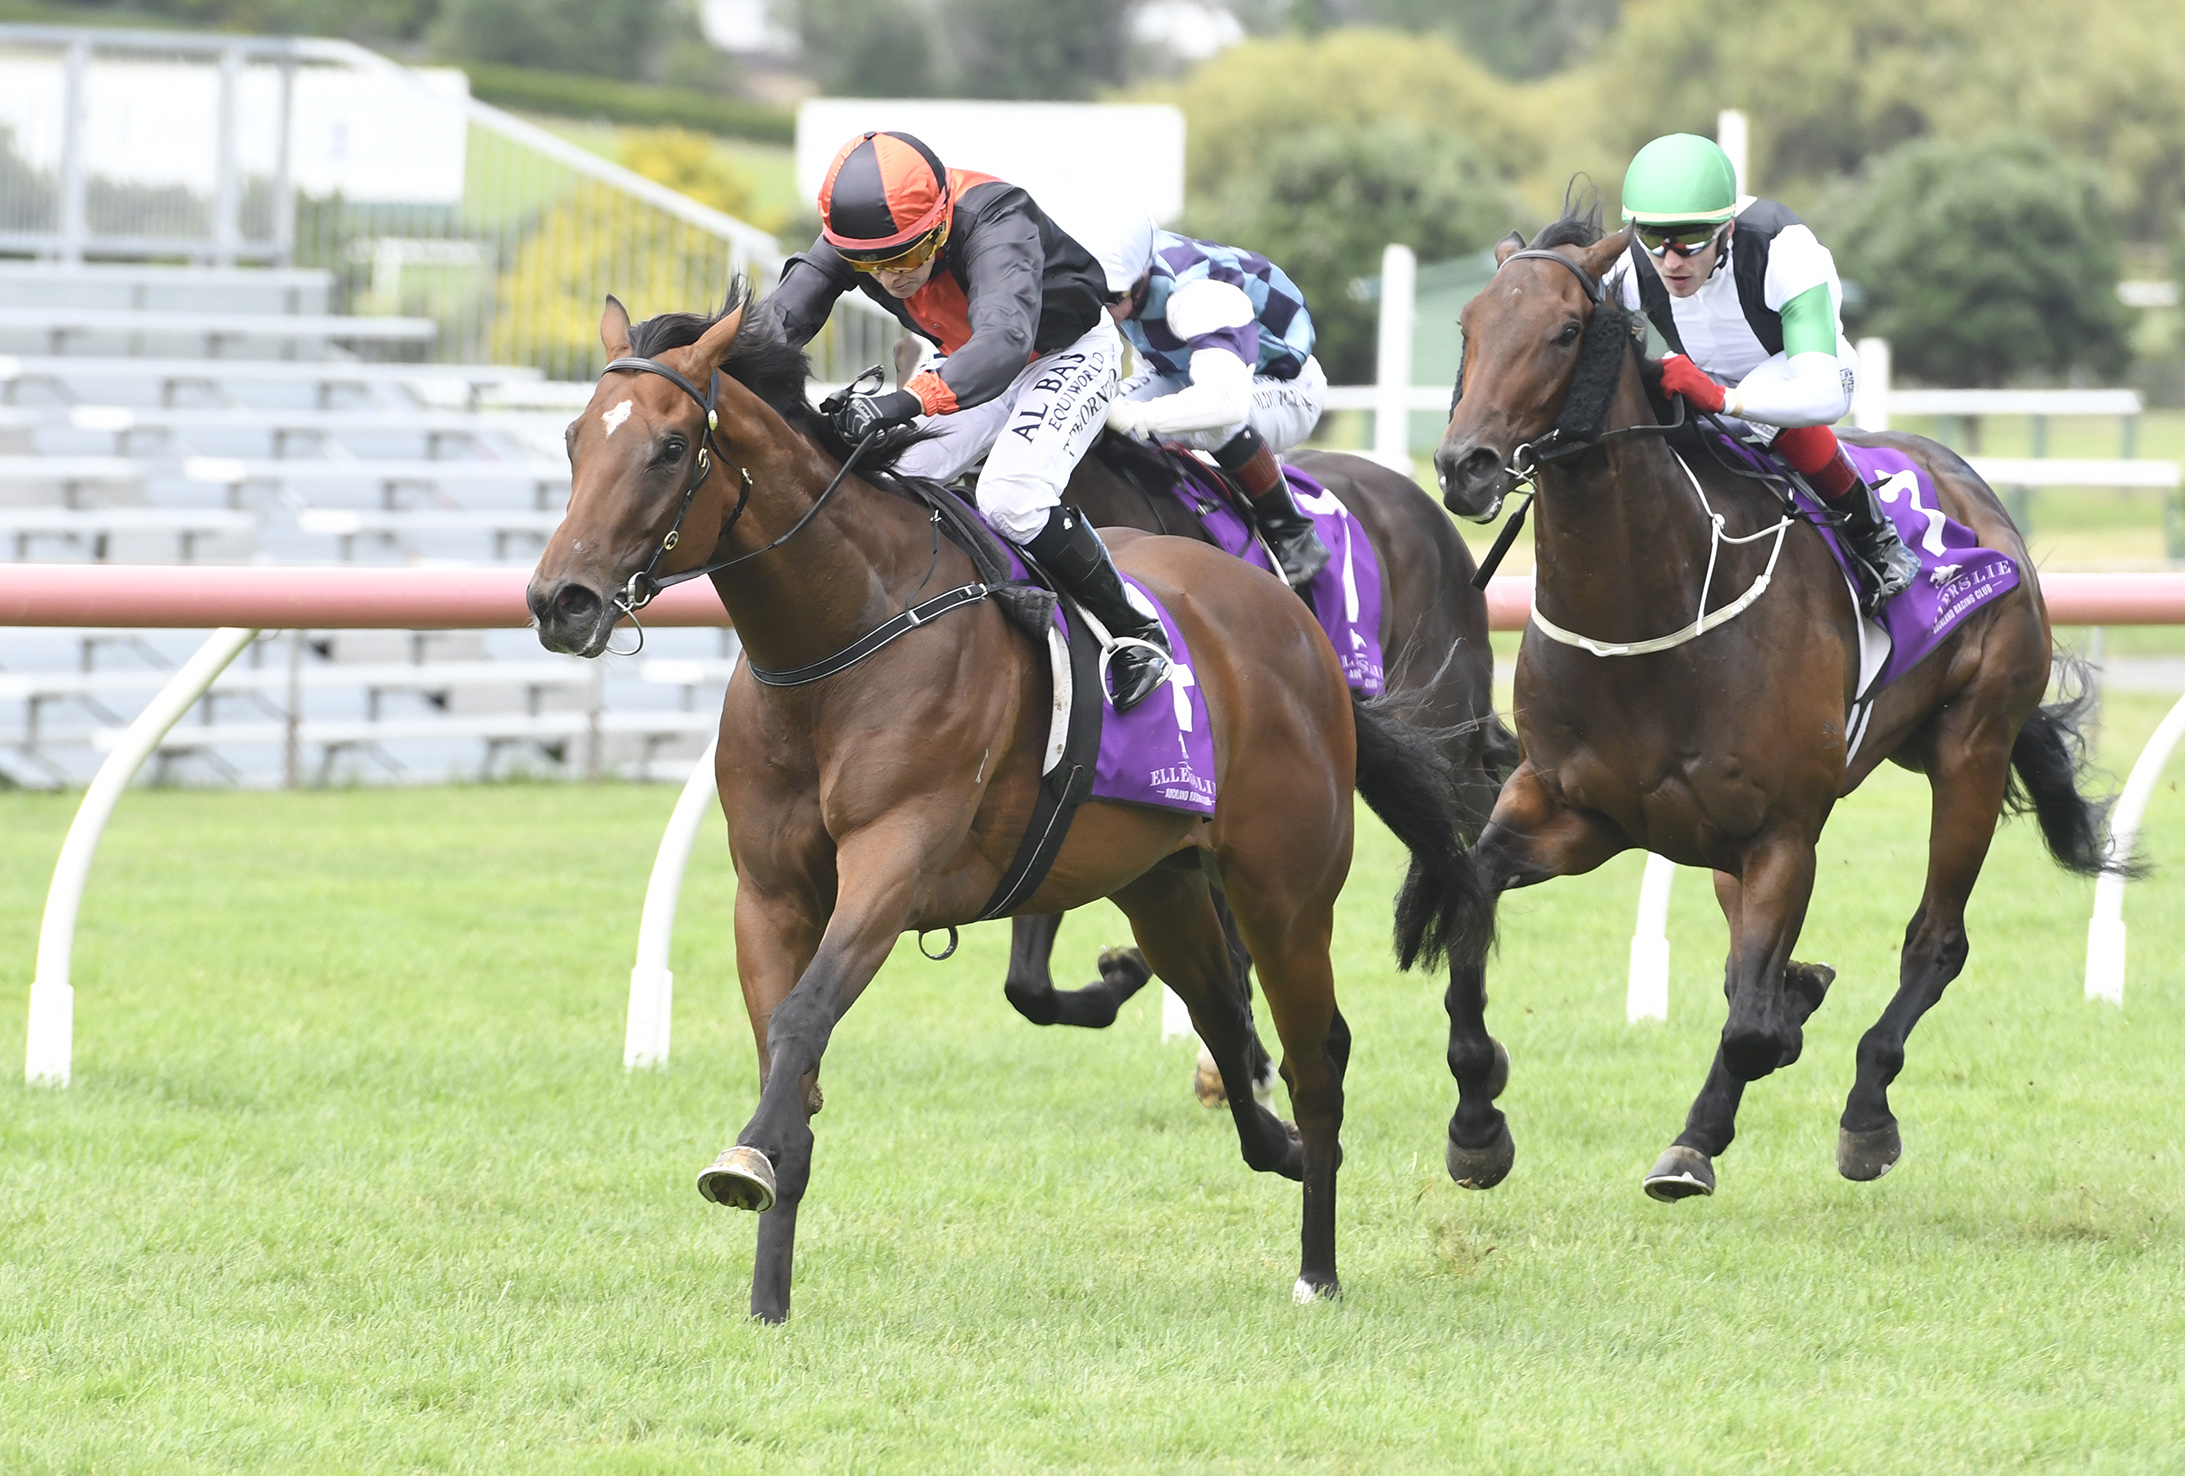 Race at Ellerslie